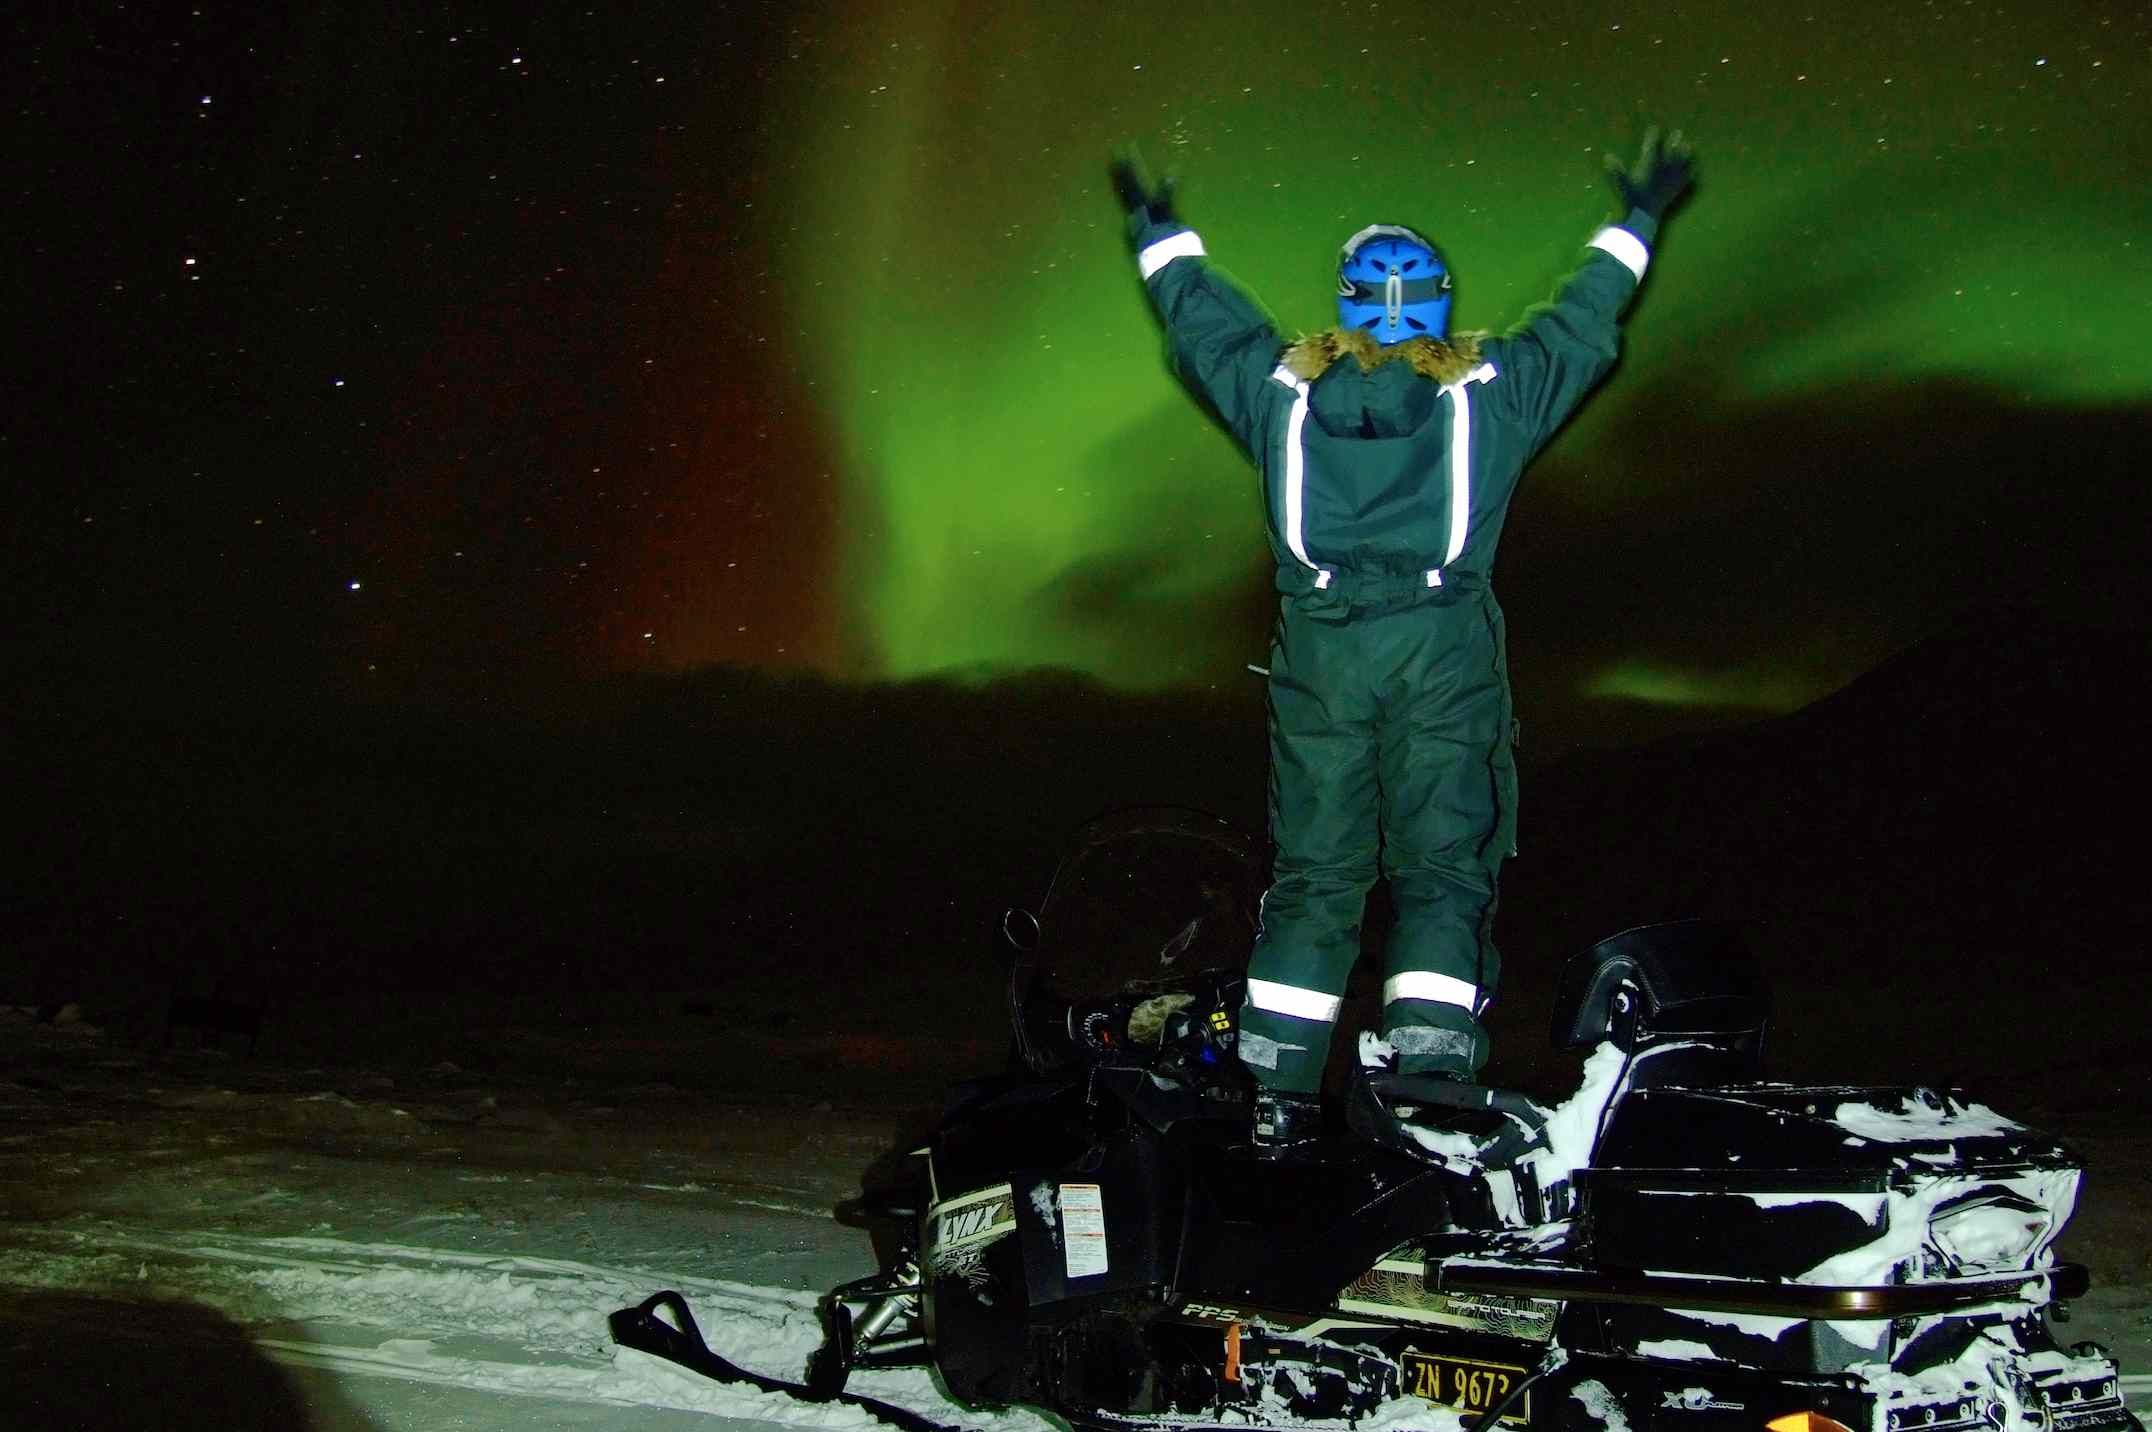 Watching the Northern Lights from atop a snowmobile.